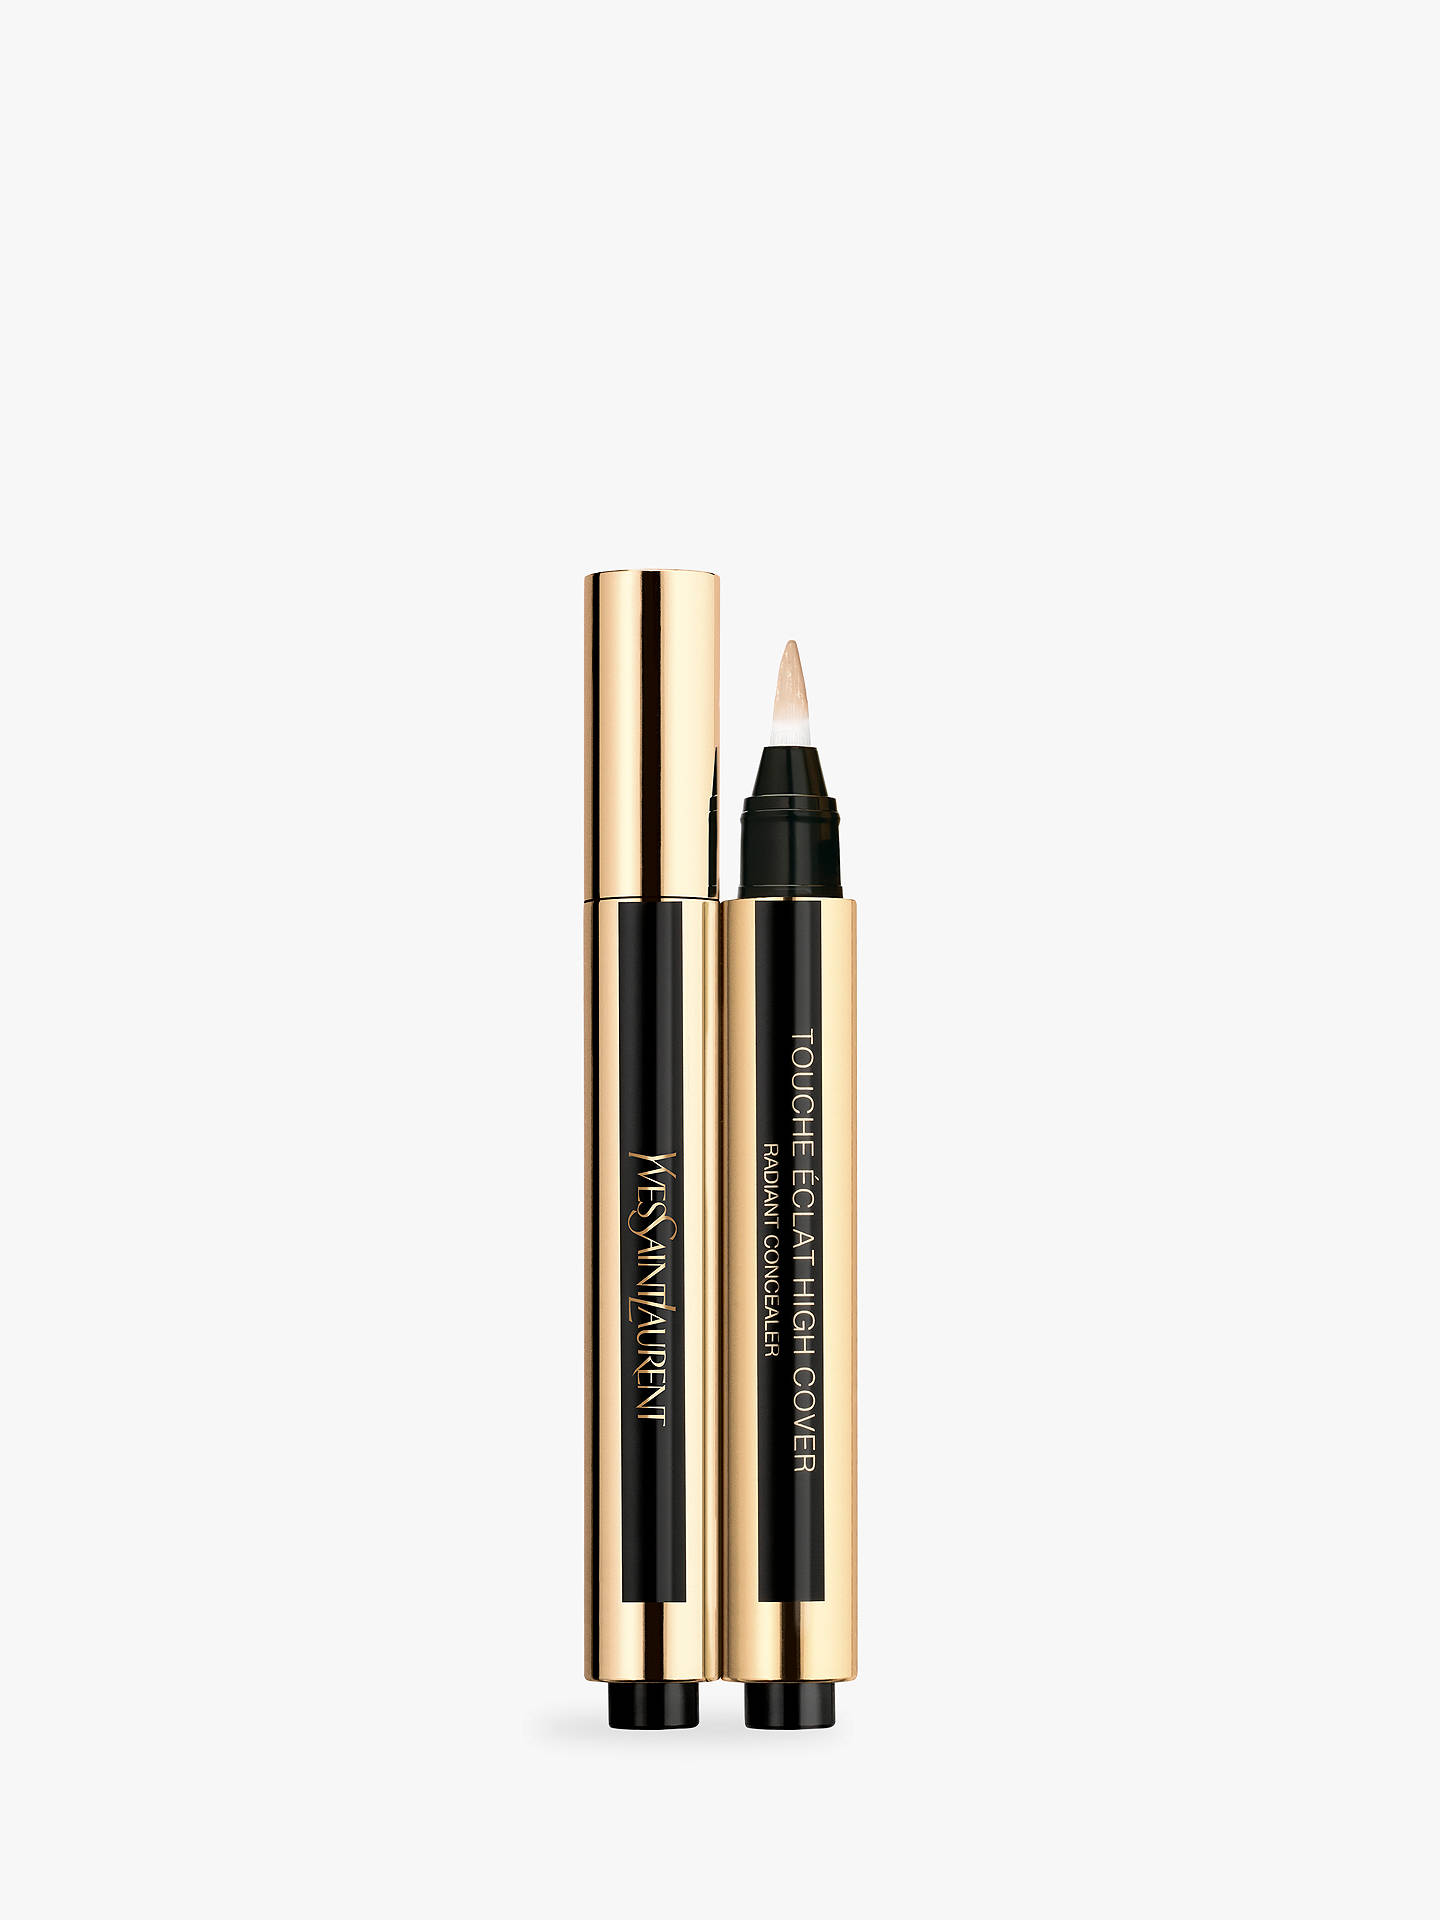 BuyYves Saint Laurent Touche Éclat High Cover Concealer, 0.5 Vanilla Online at johnlewis.com